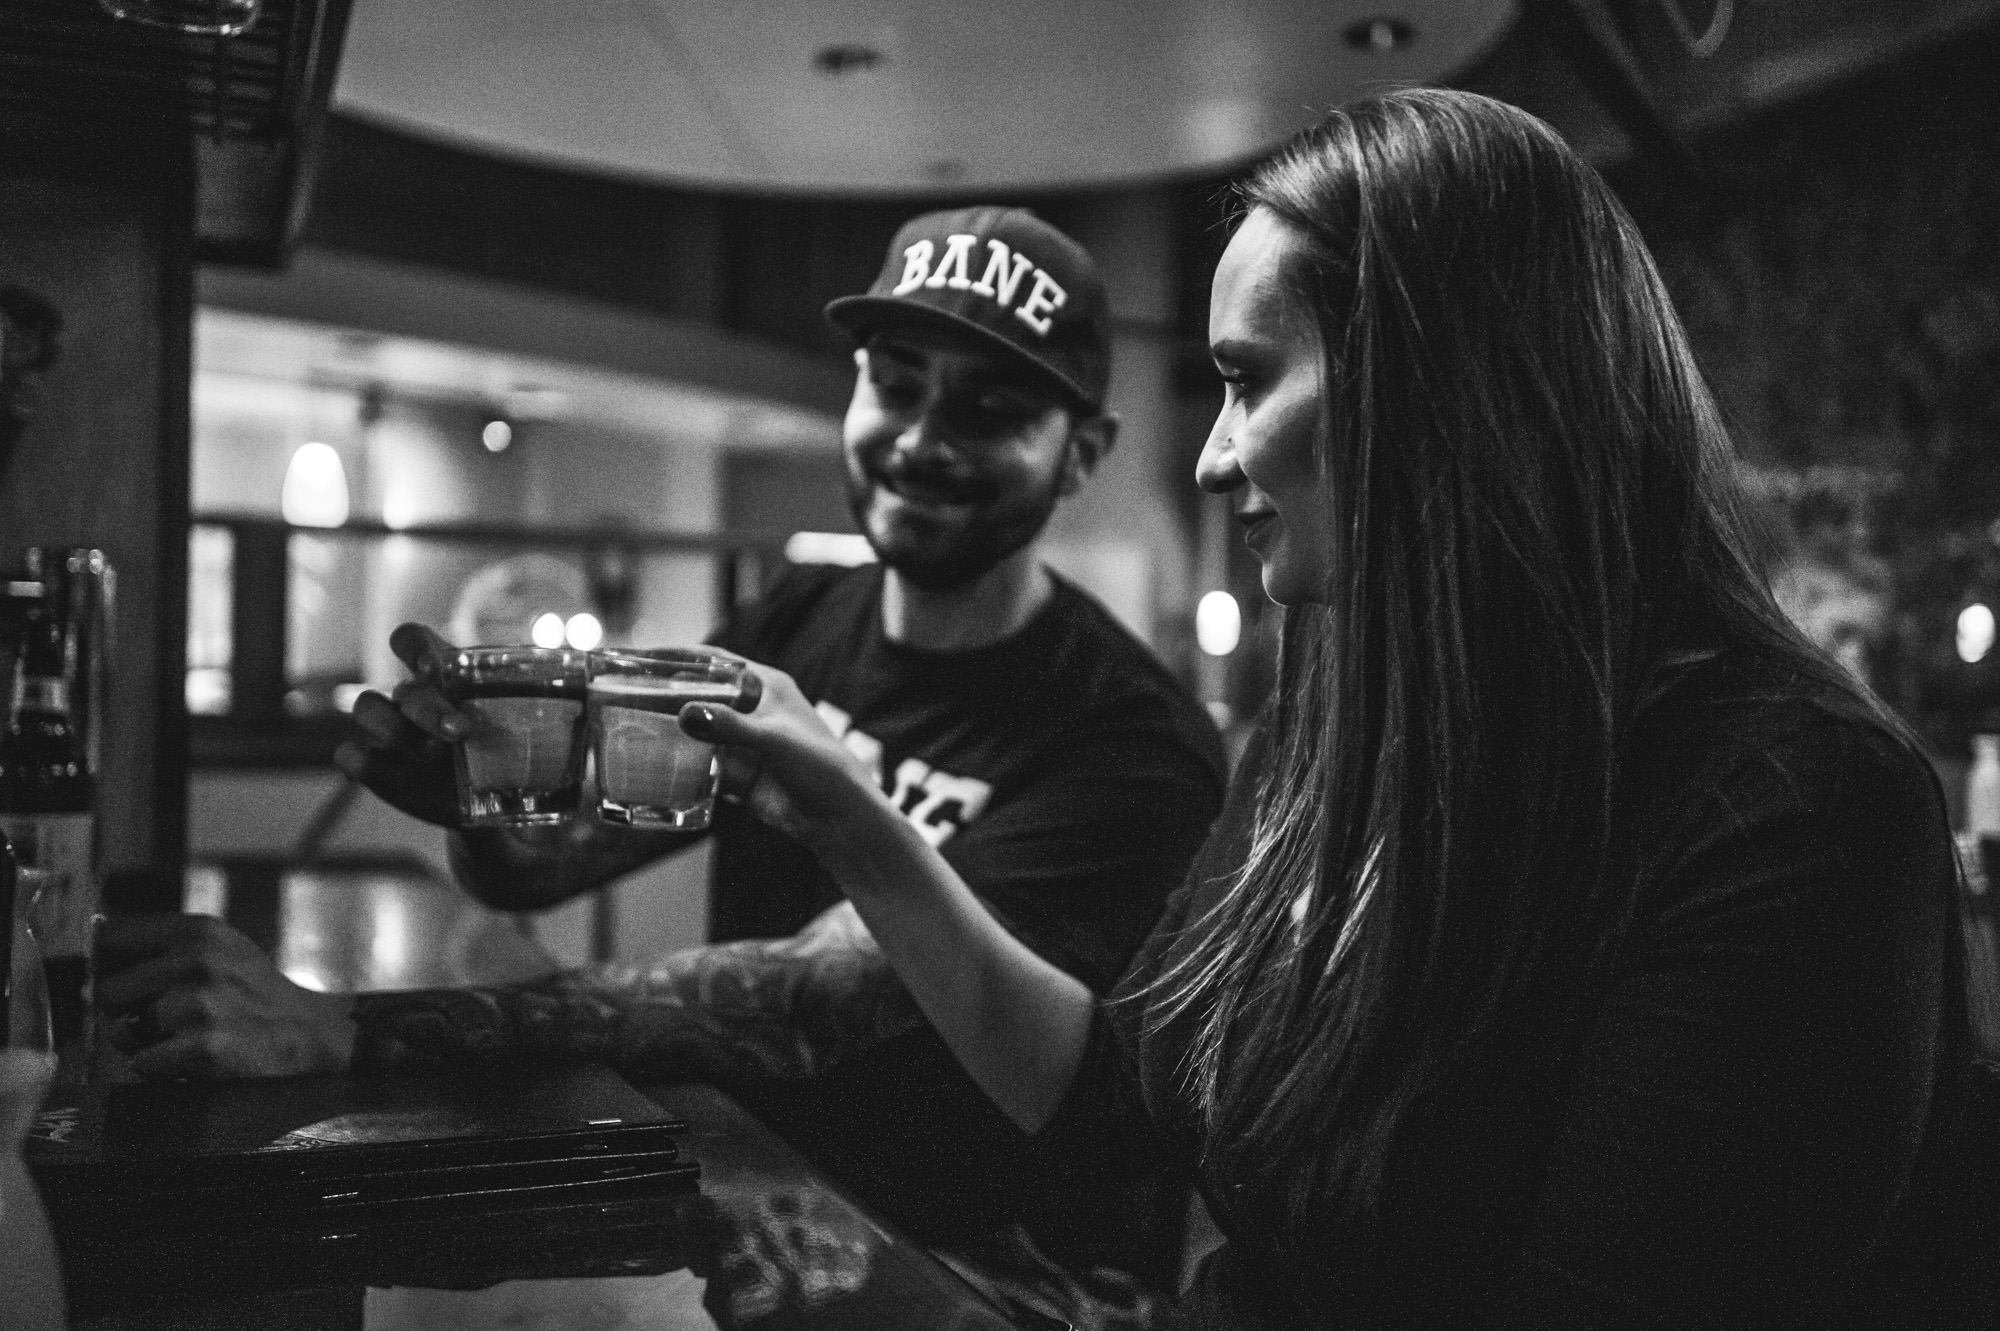 A couple in a restaurant cheers as they prepare to take saki bombs, black & white, Denver, Colorado